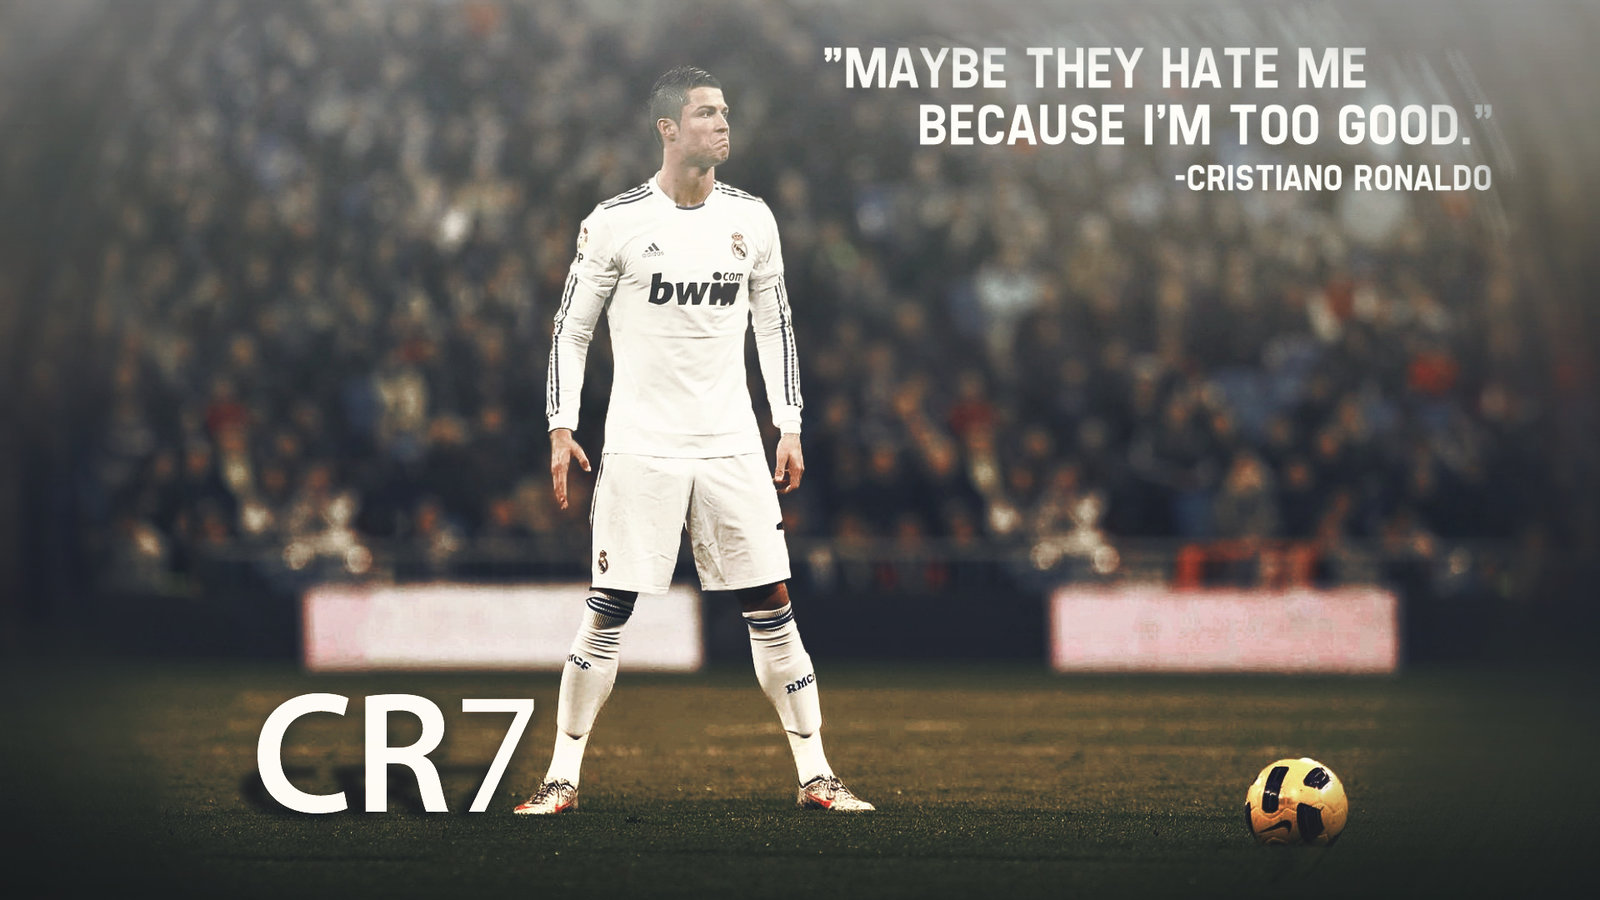 cr7 wallpaper sade by dreamgraphicss on deviantart 1600x900